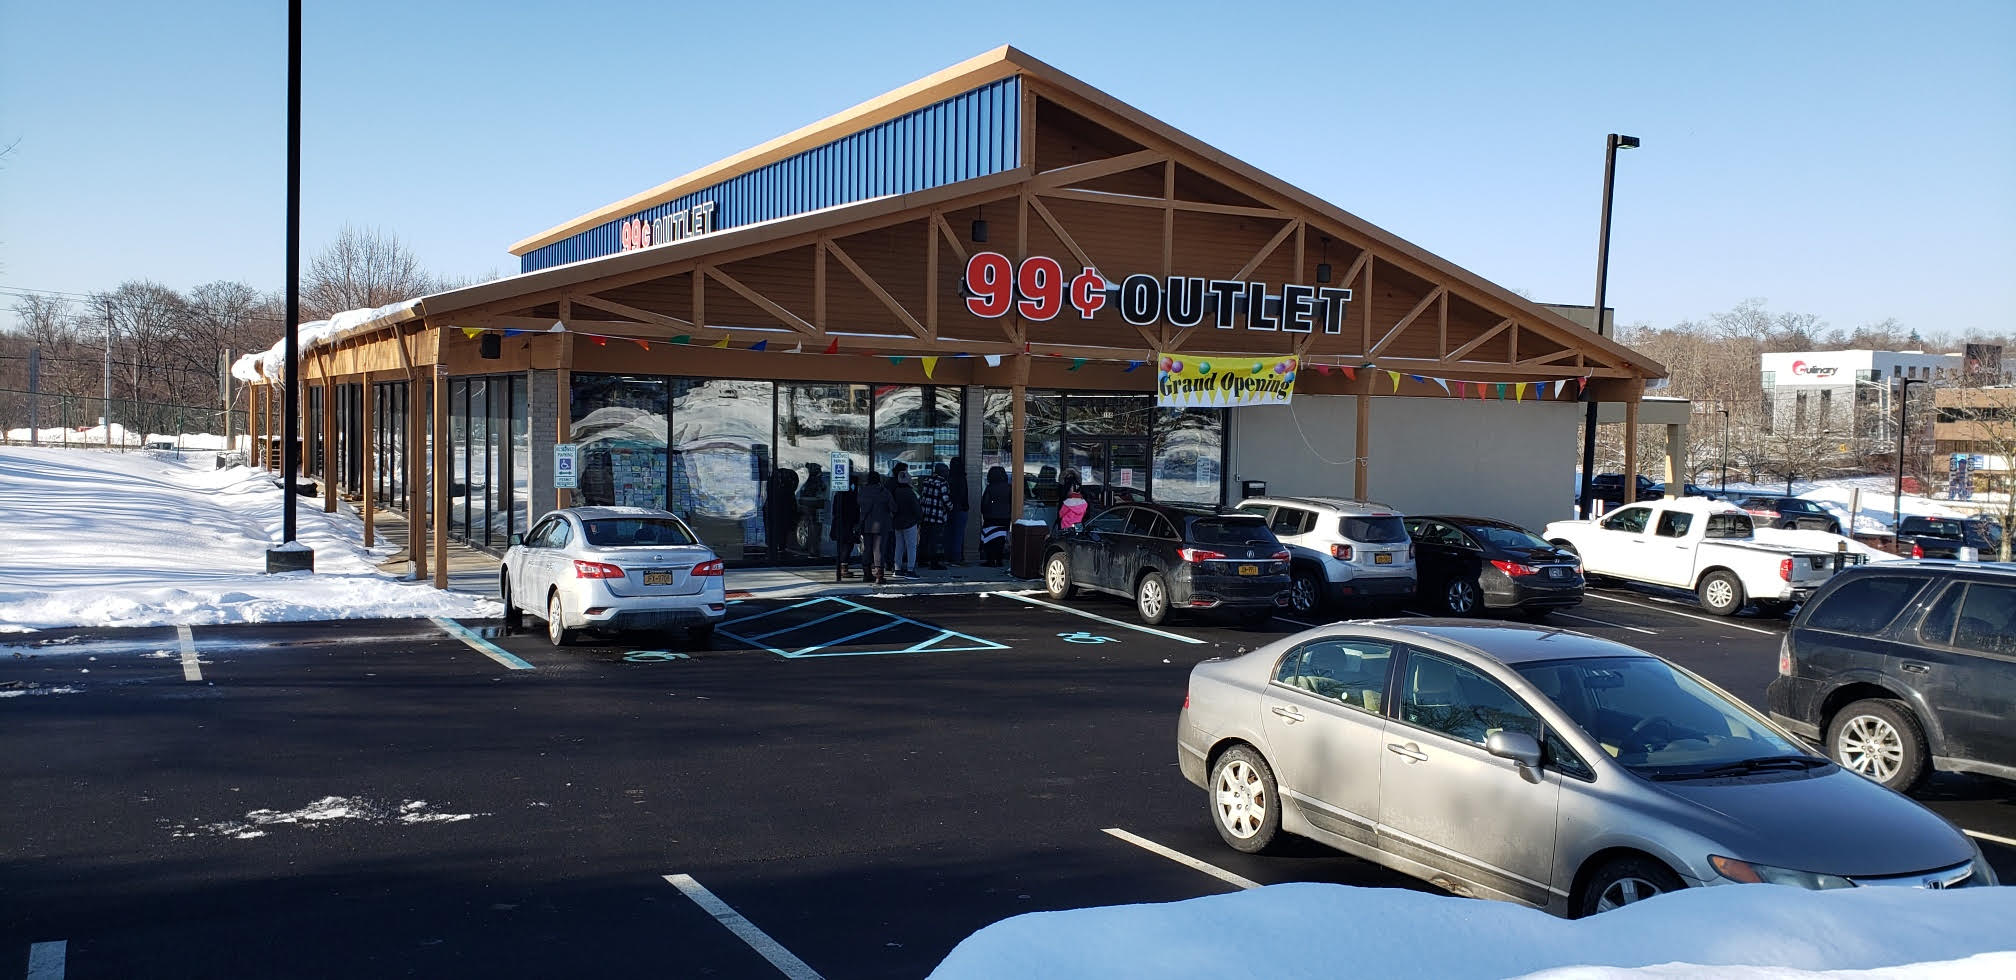 Grand Opening! New 99 Cent Outlet Comes to Spring Valley